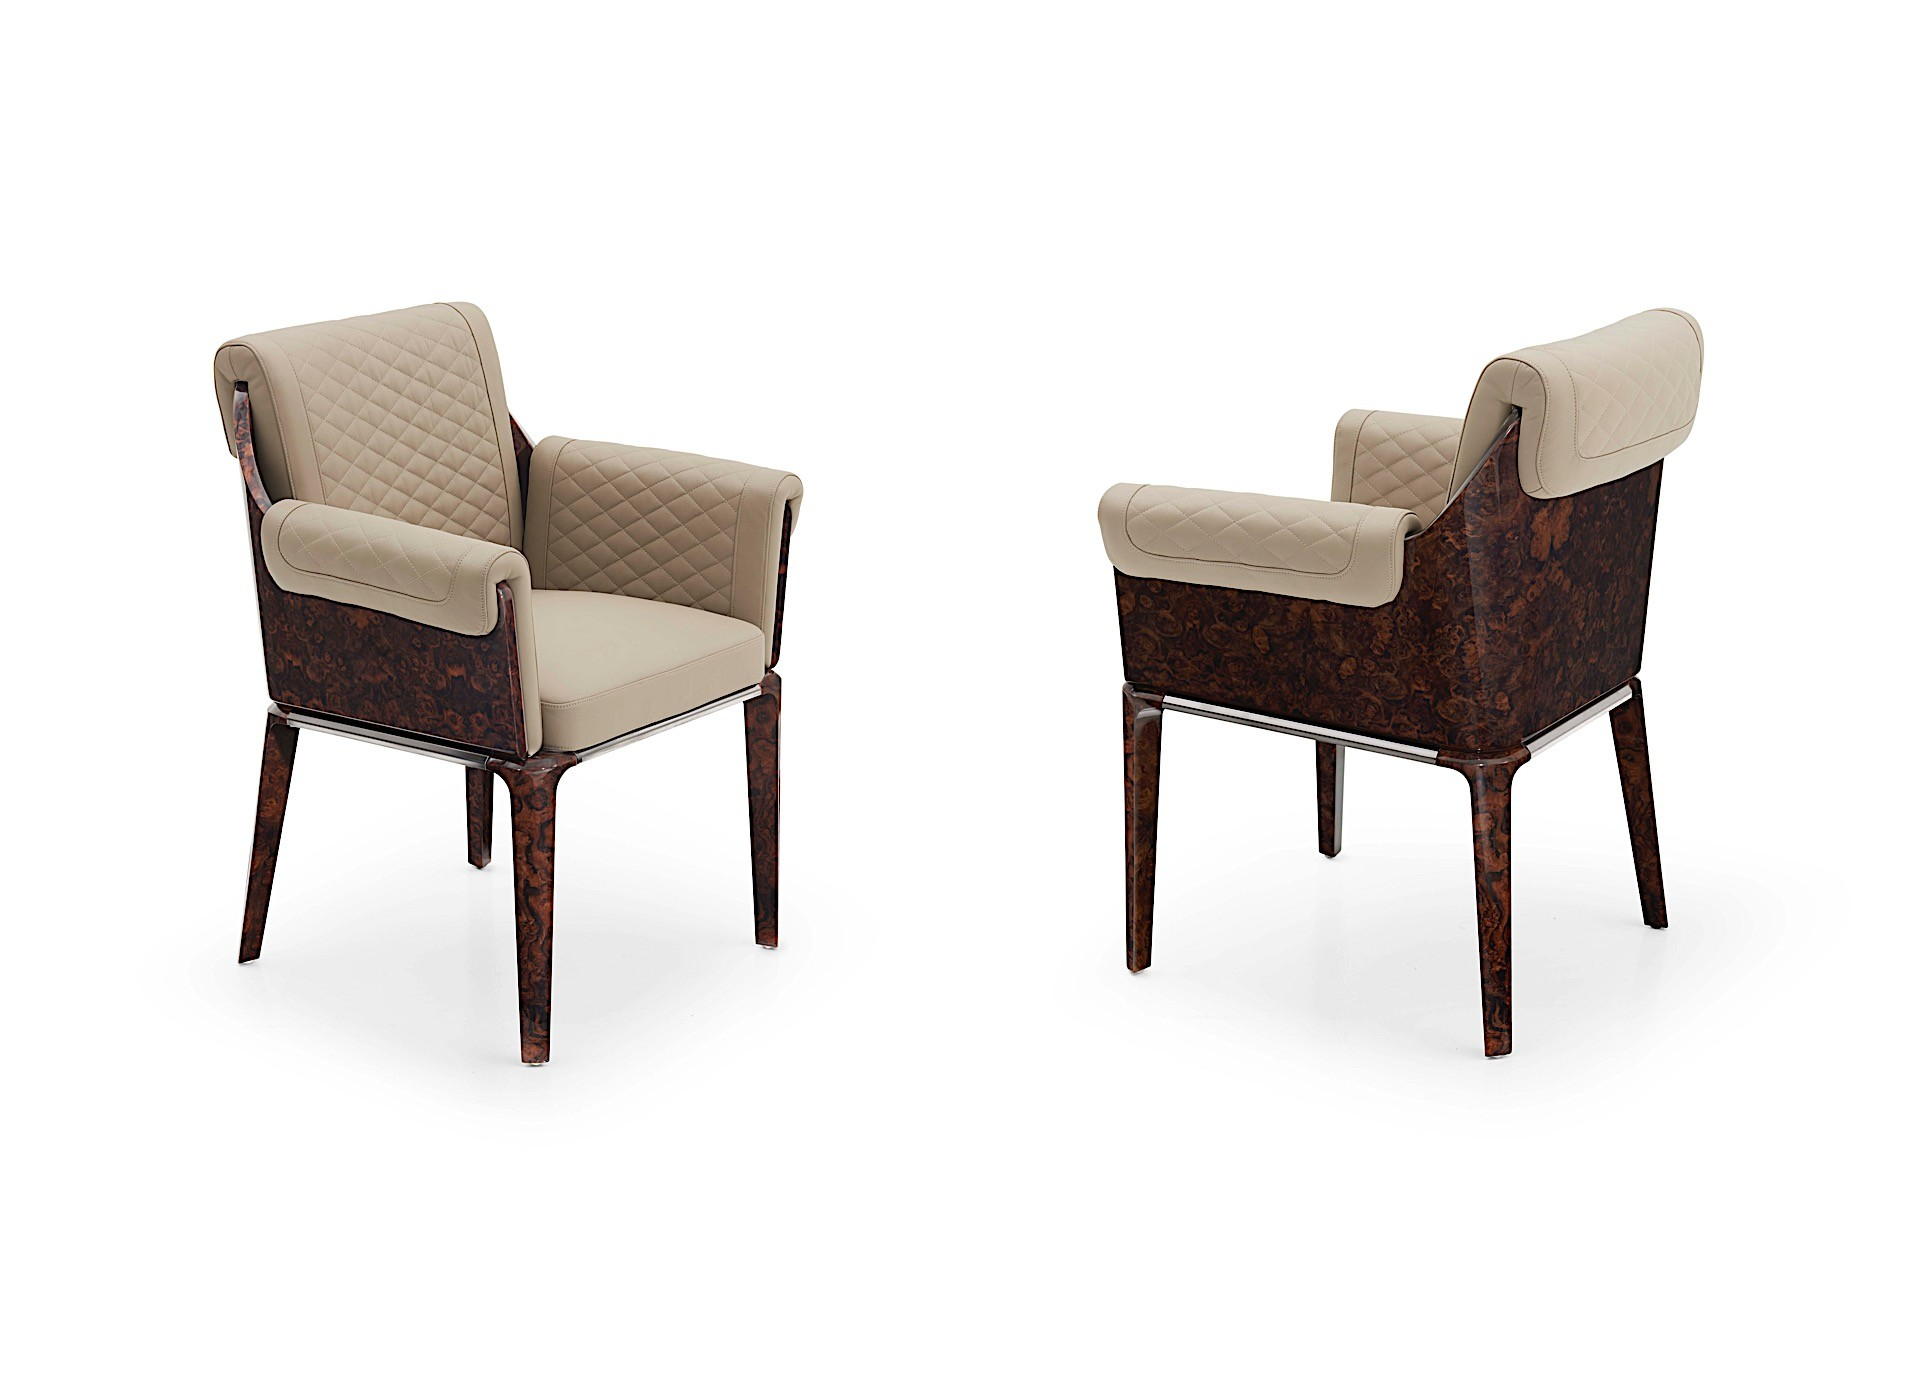 Bentley Launches Its New Furniture Collection, Prepare